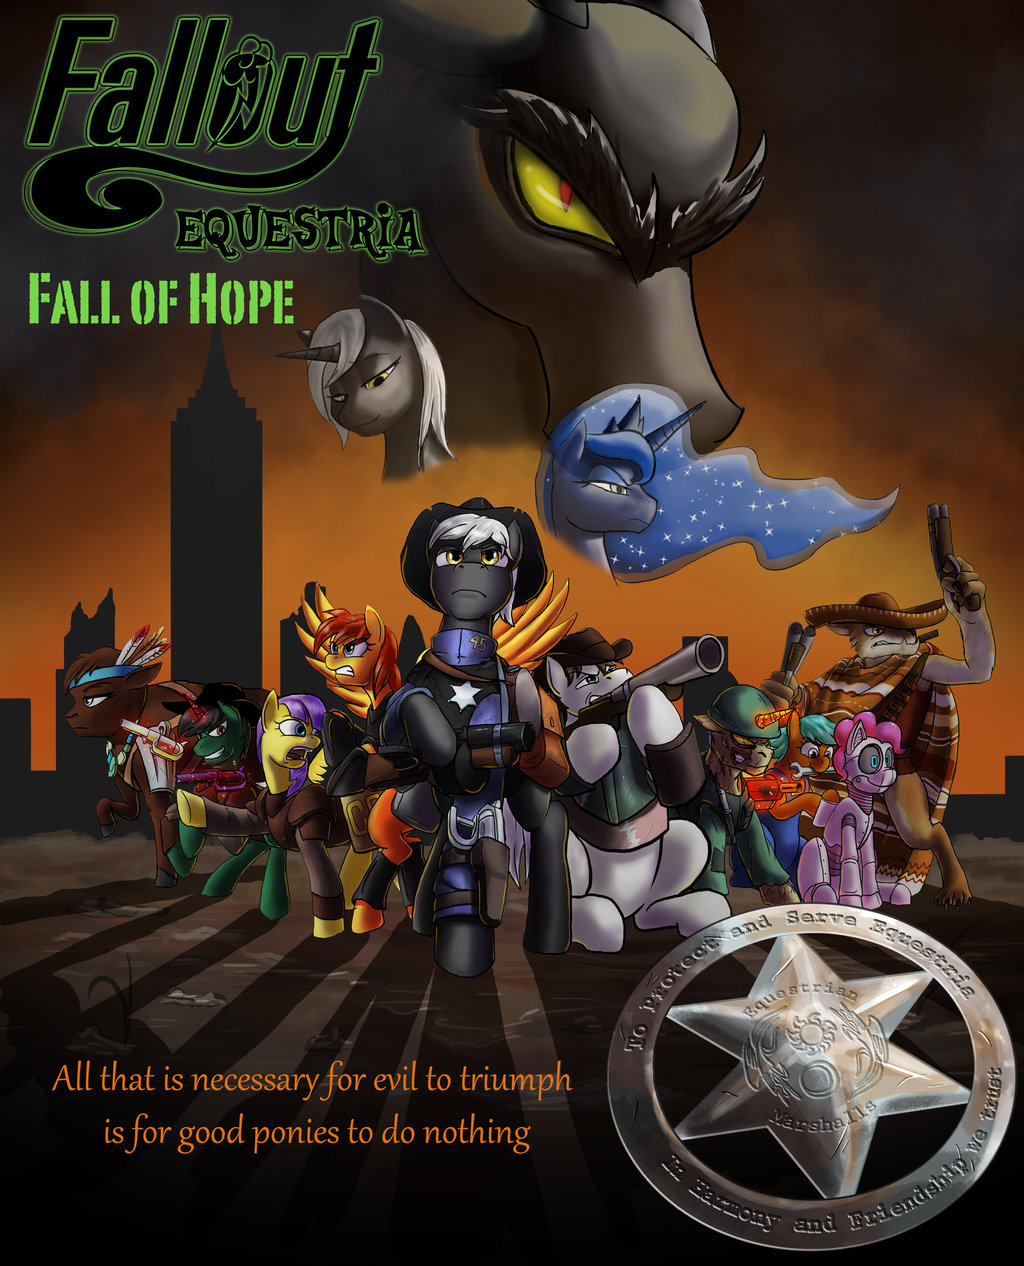 Fall of equestria